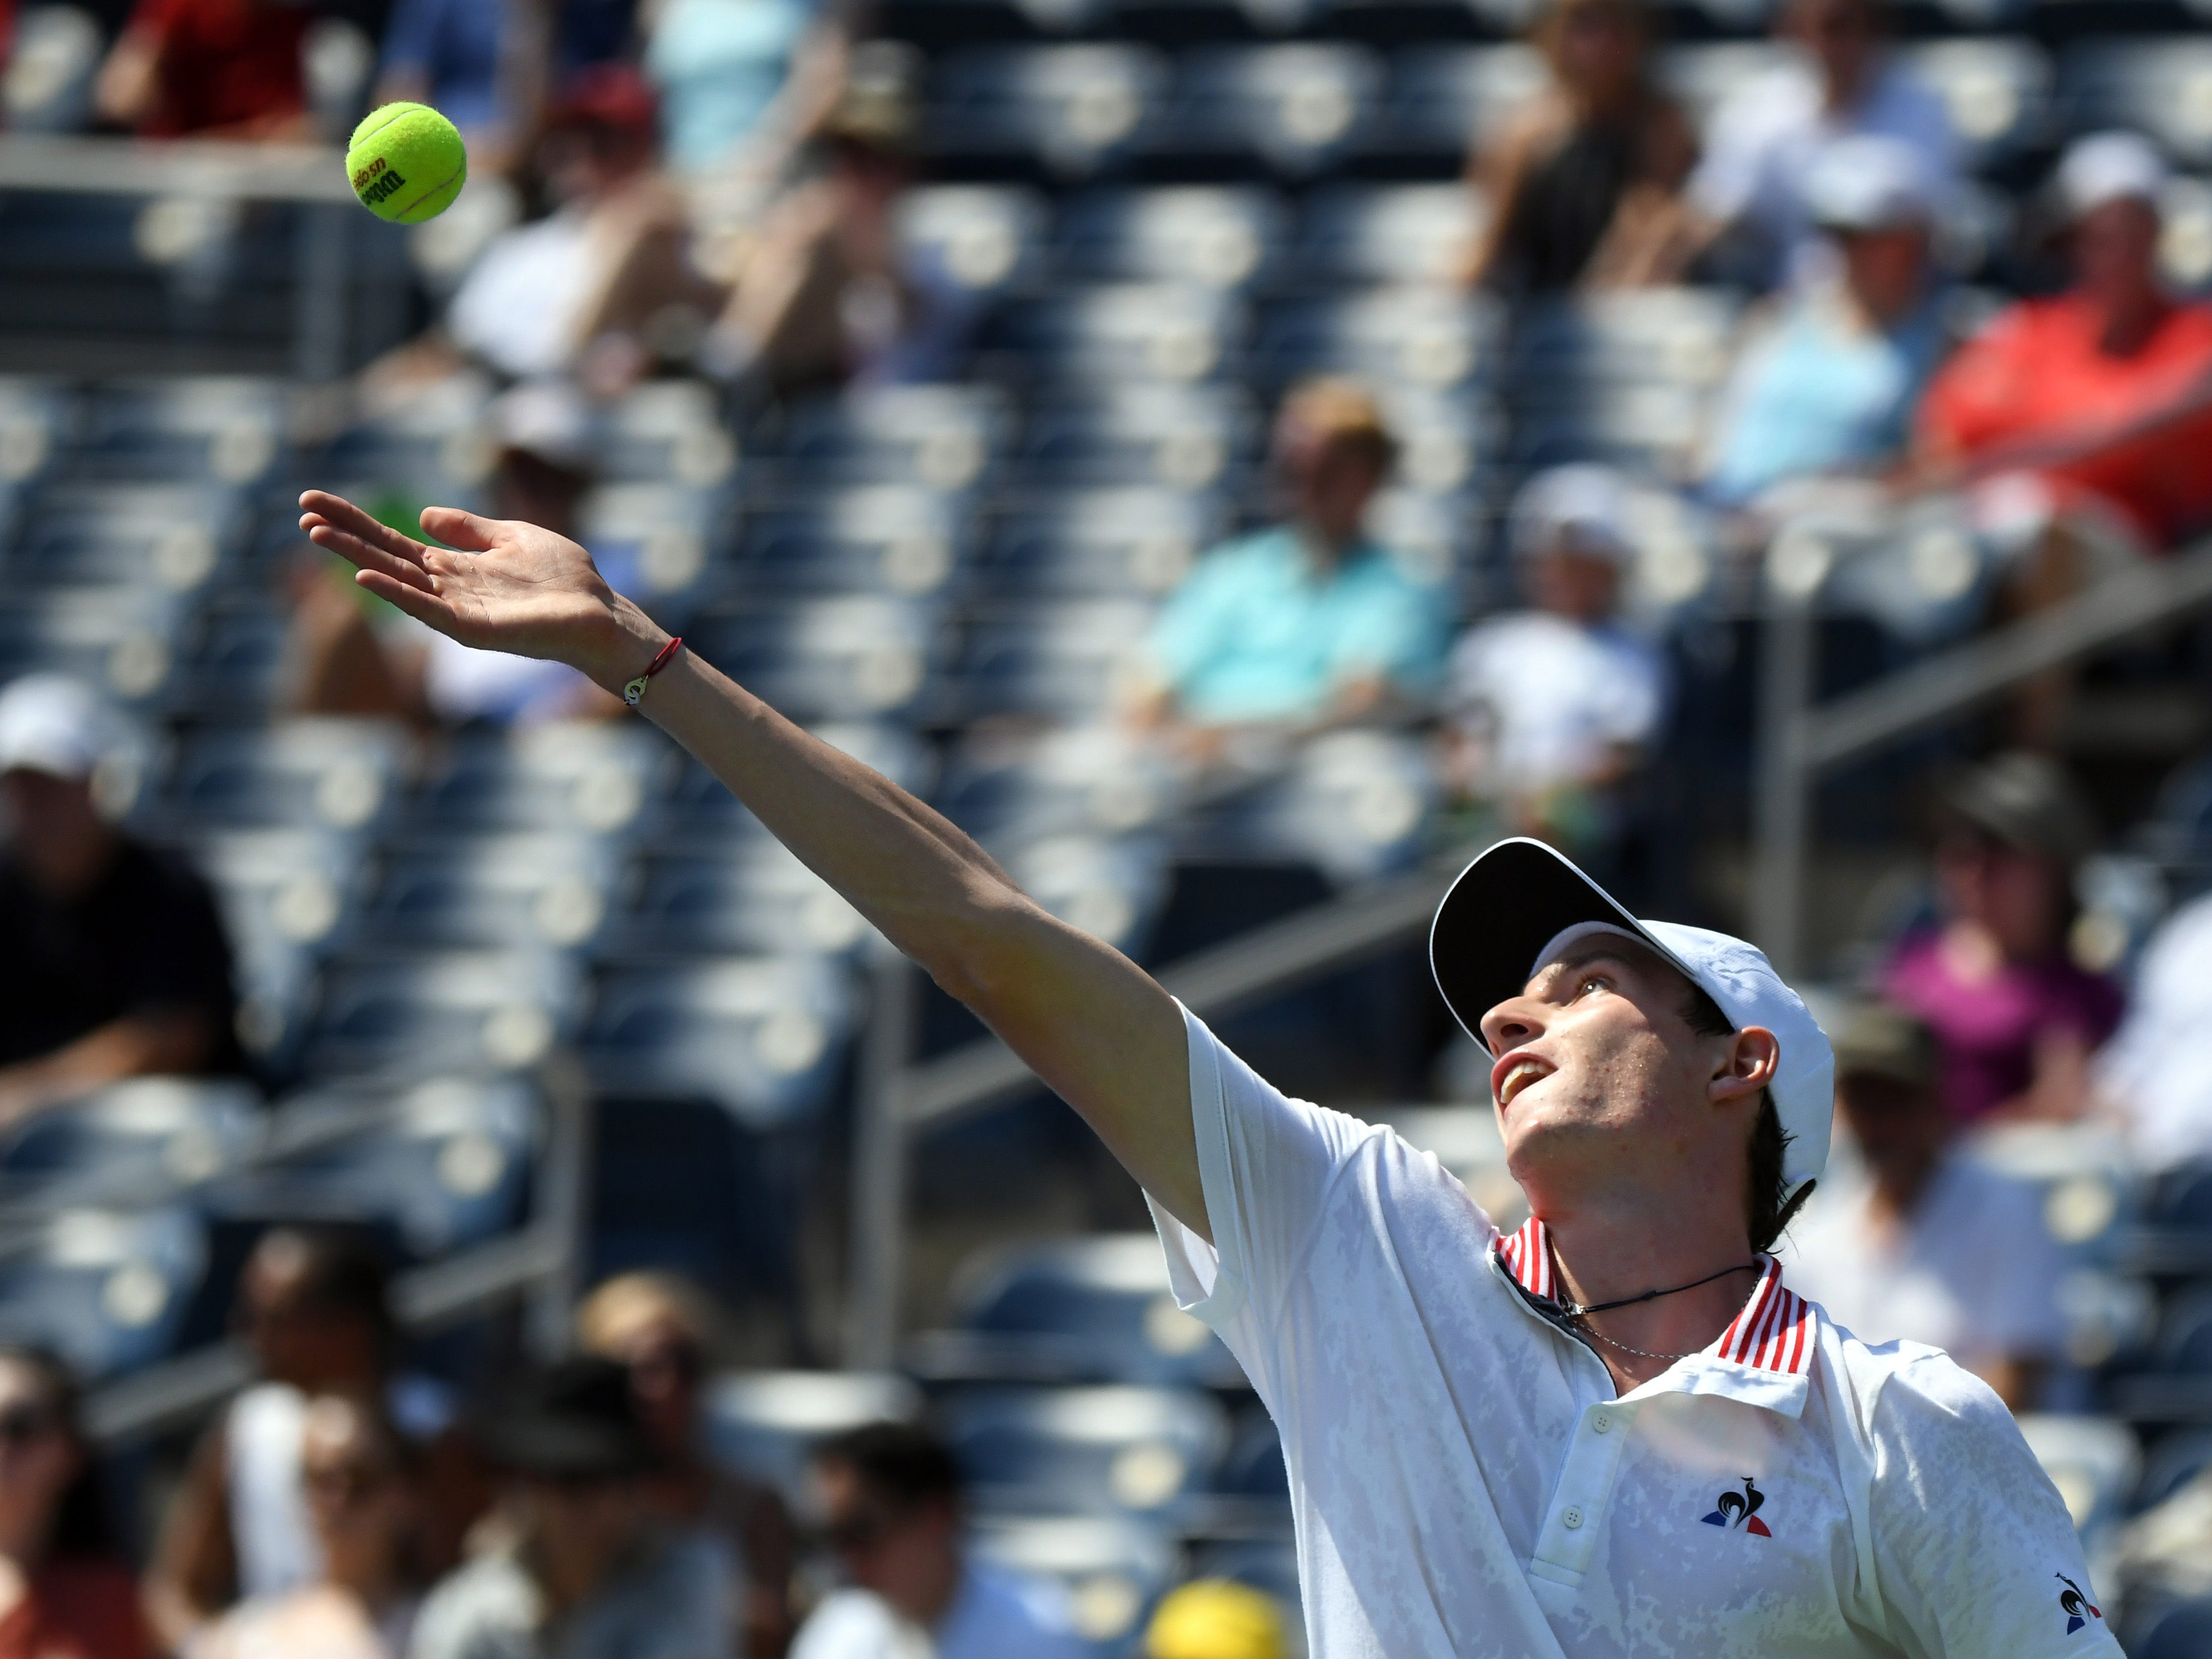 Ugo Humbert of France serves to Stan Wawrinka of Switzerland.